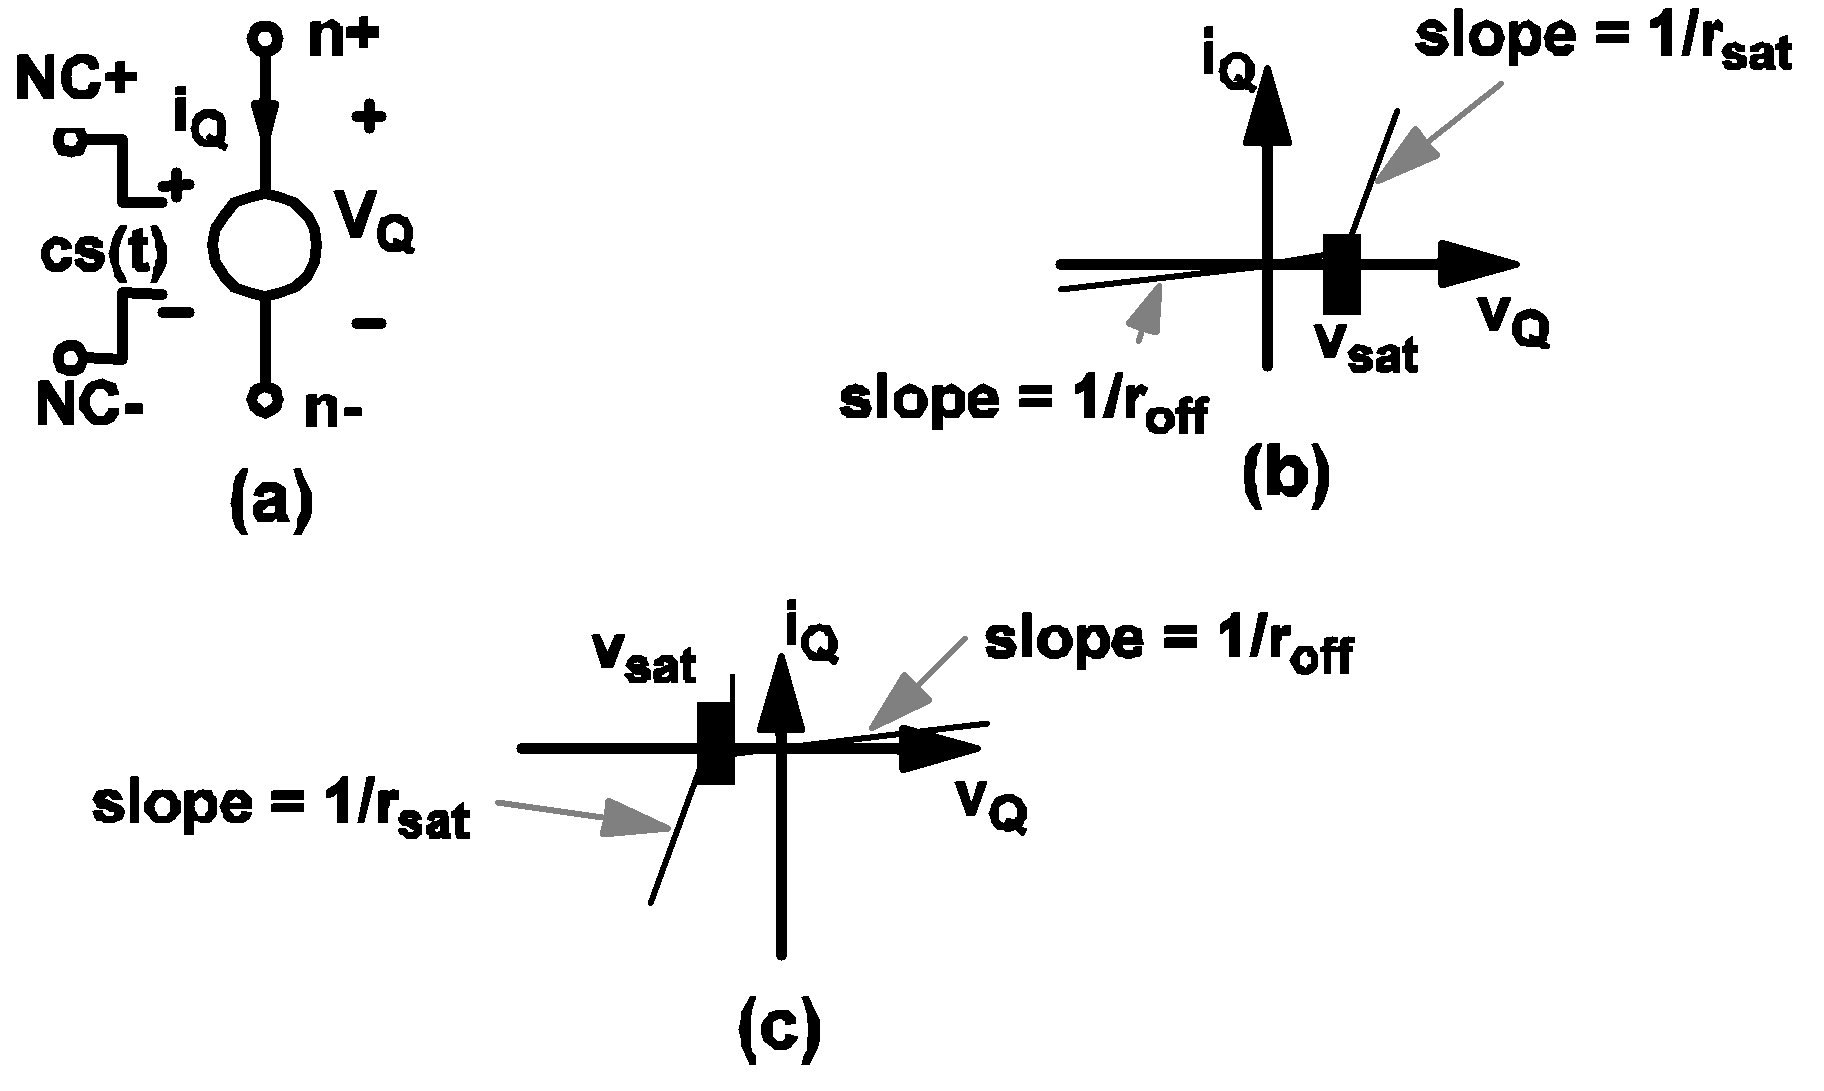 Simplis Reference Device Models Used In Controlled Transistor Series Regulator 44 Model For The Simple Switch A By Control Signal Cst B I Q Vs V Characteristic Of